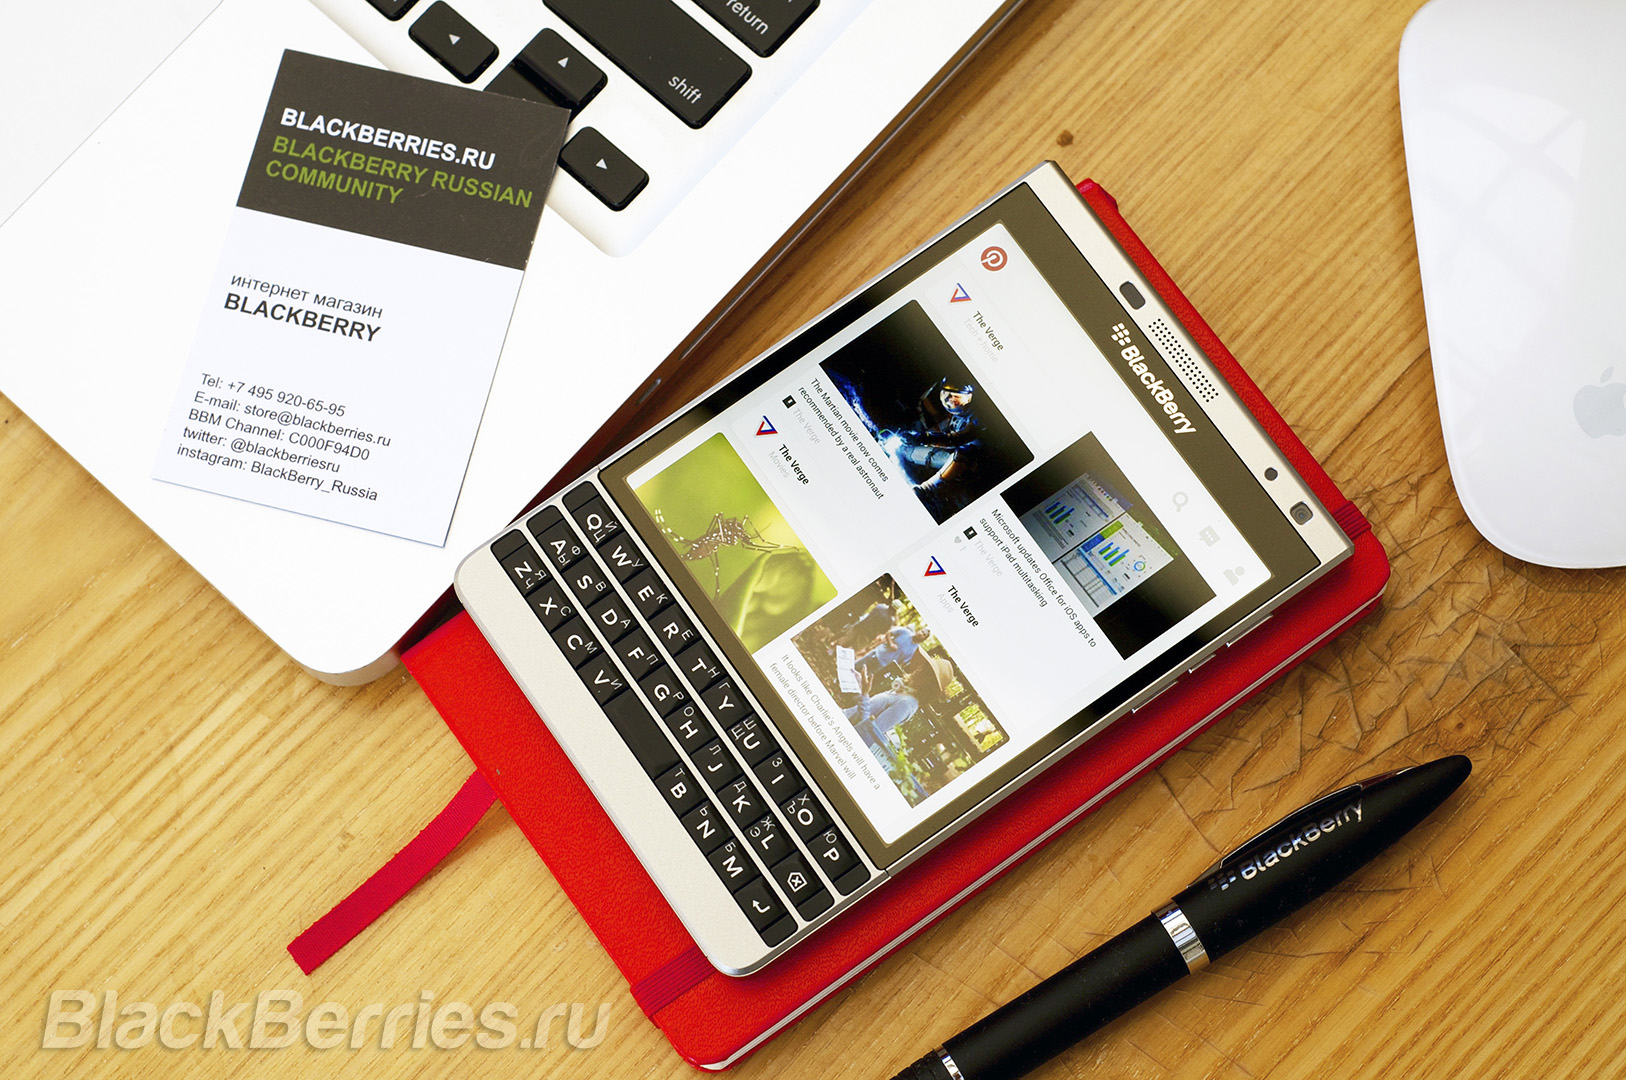 BlackBerry-Passport-SE-Apps-19-09-15